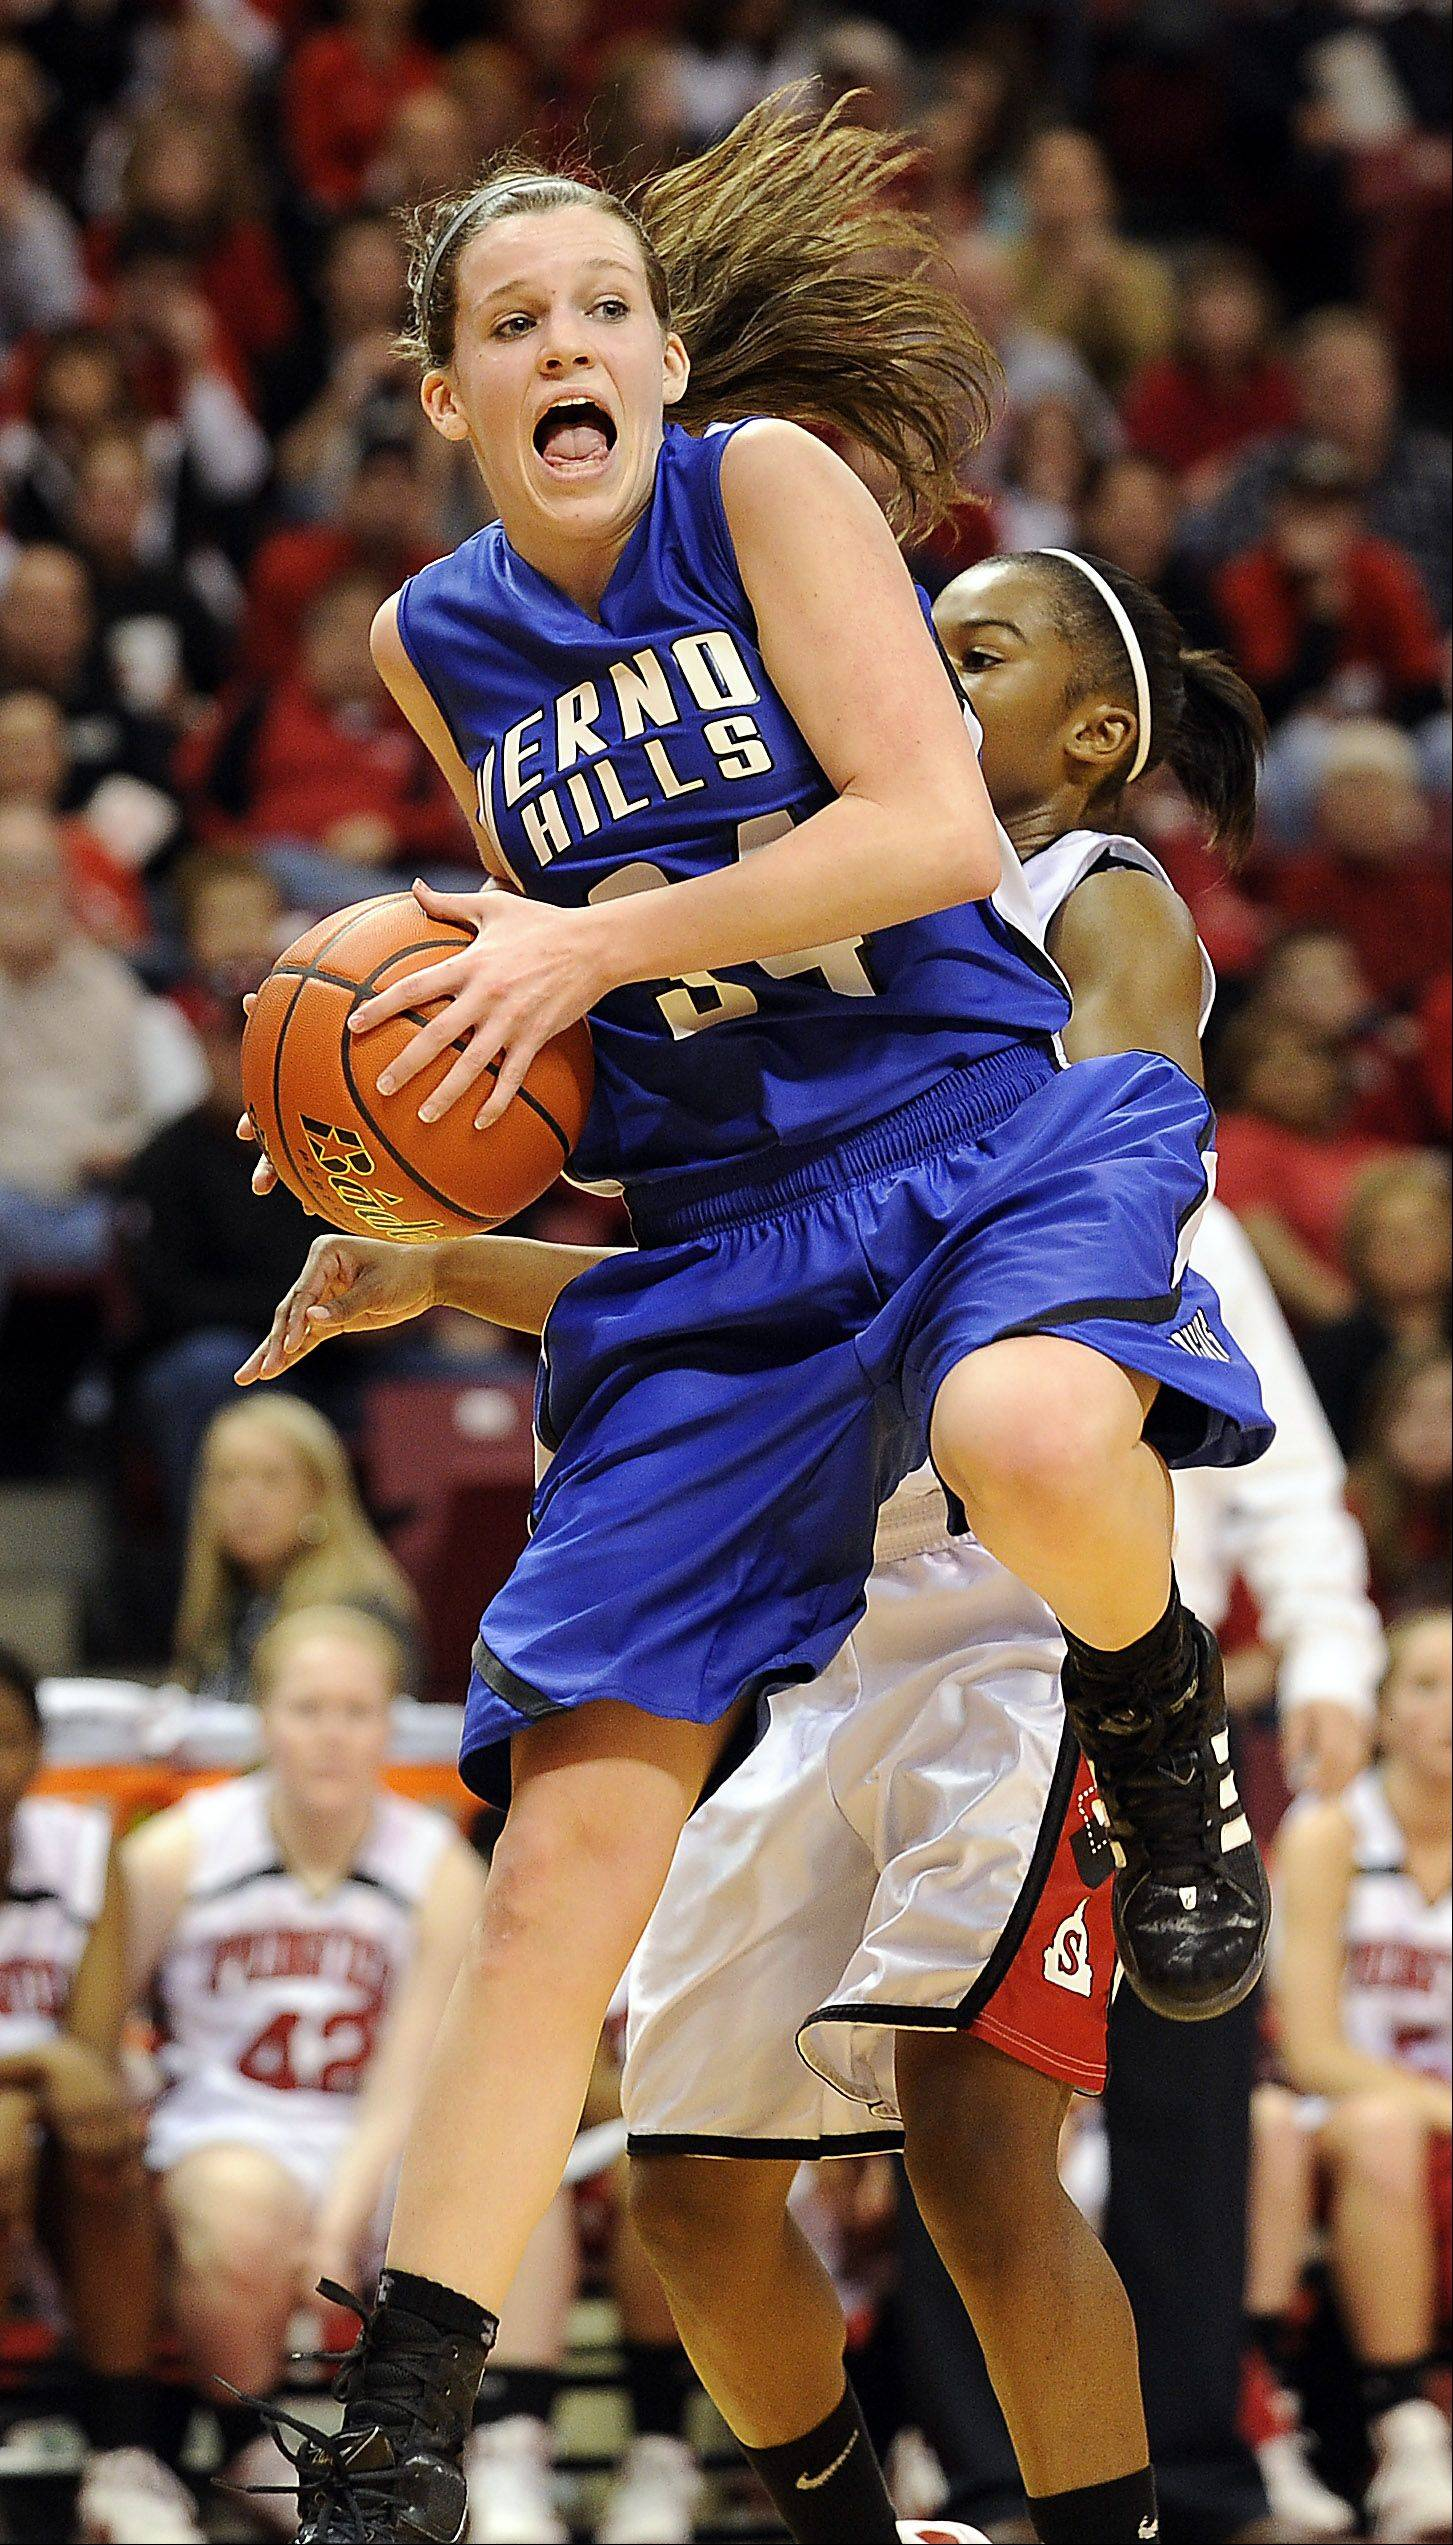 Mark Welsh/mwelsh@dailyherald.com Vernon Hills' Abby Springer pulls down a rebound in the second quarter in the 2012 IHSA Class 3A girls basketball tournament in Normal, Illinois on Friday.